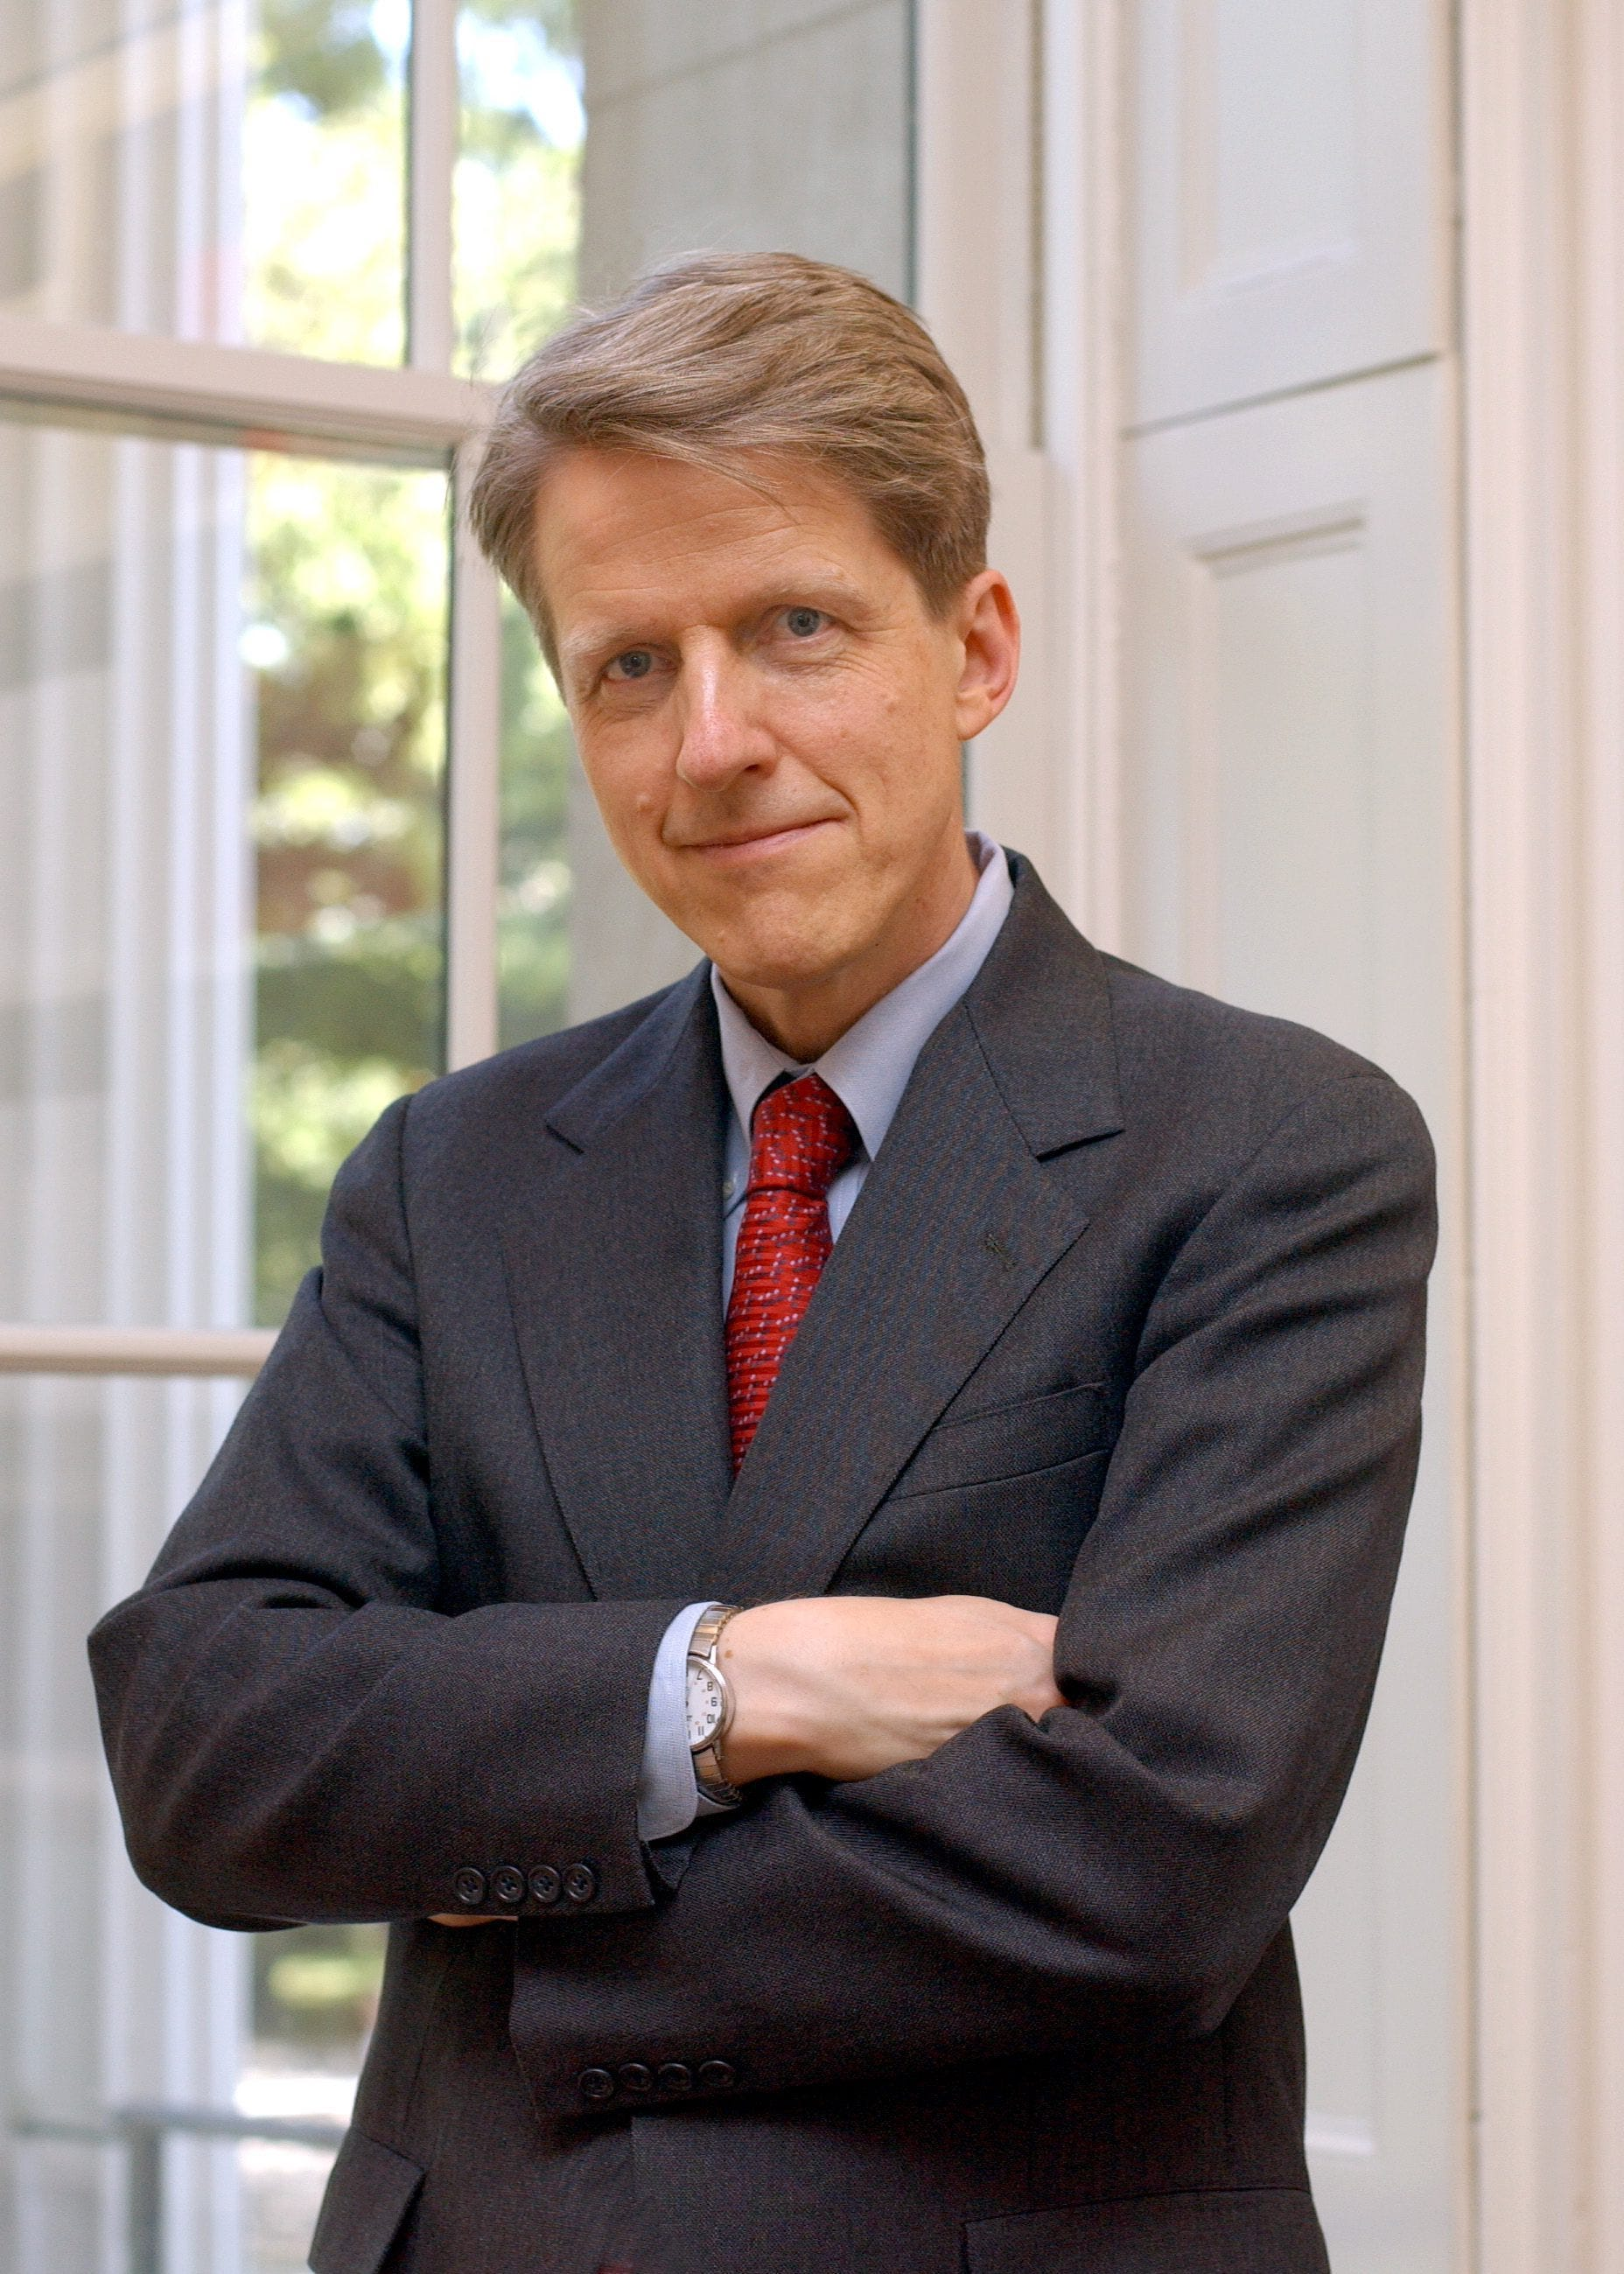 The one big thing economist Shiller says is preventing a 1929-like stock market crash